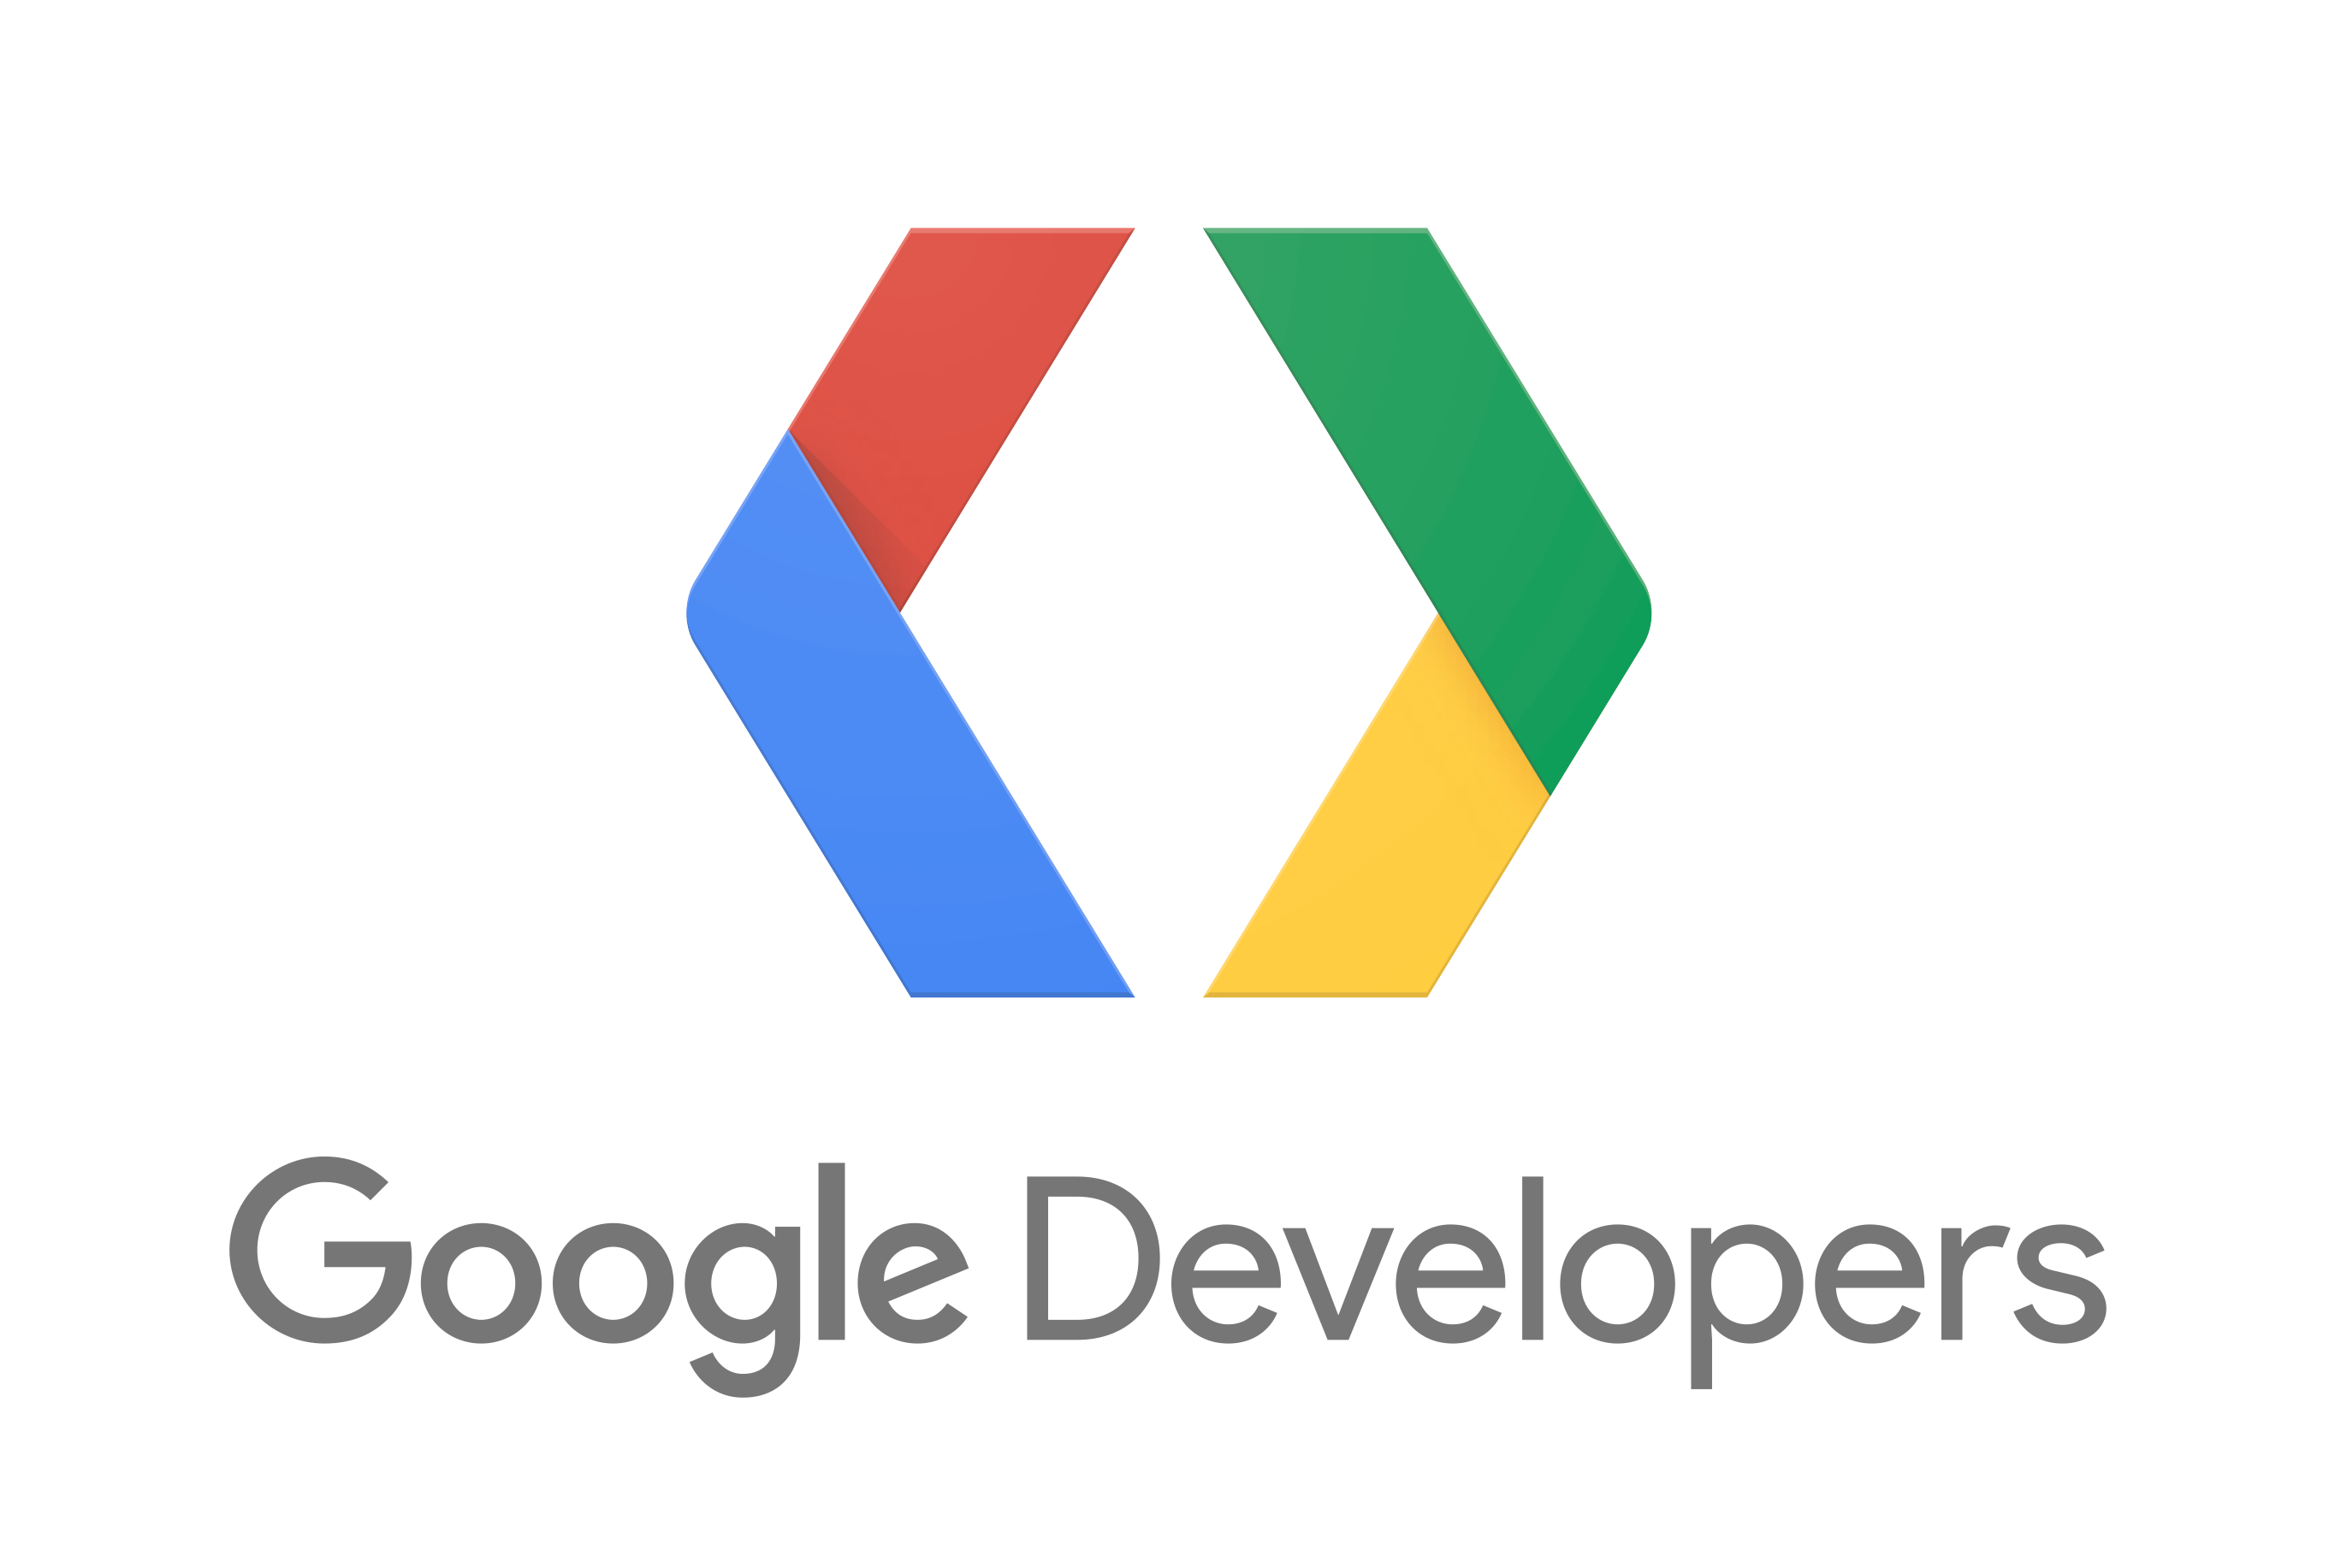 Google Developer, TechNOVA: Connected Customer